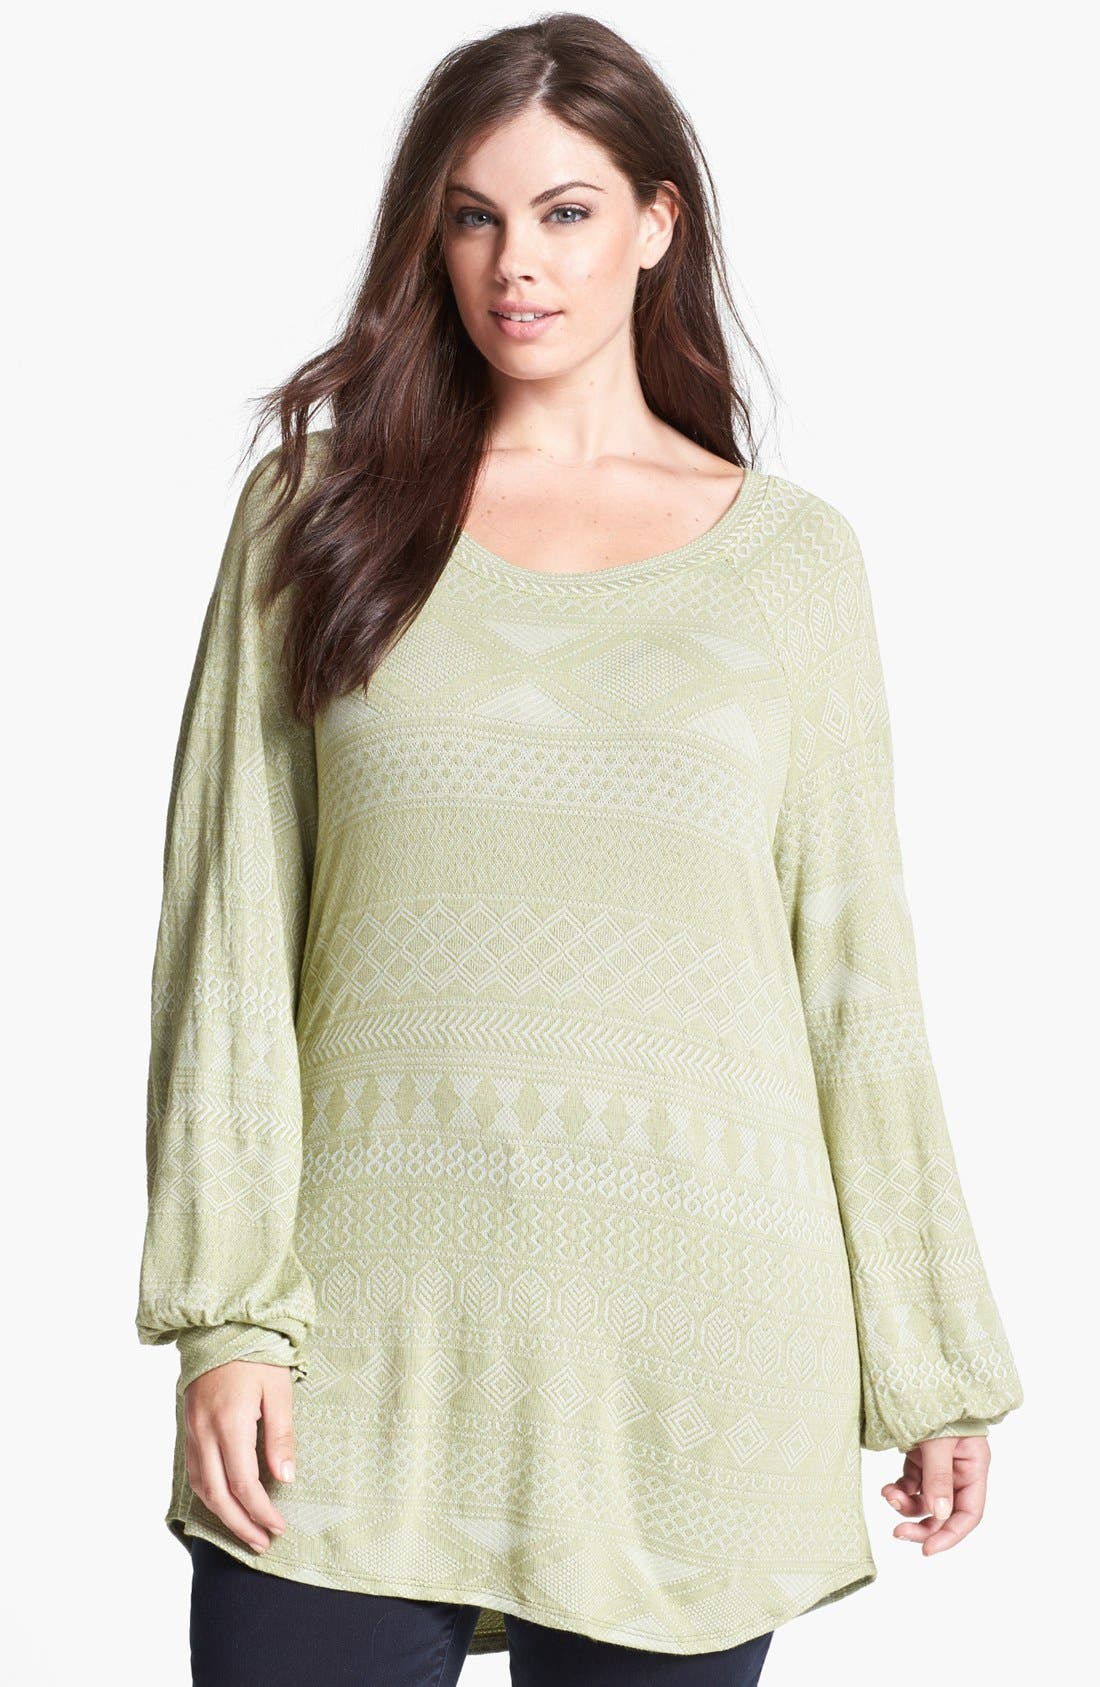 Alternate Image 1 Selected - LAmade Raglan Sleeve Top (Plus Size)